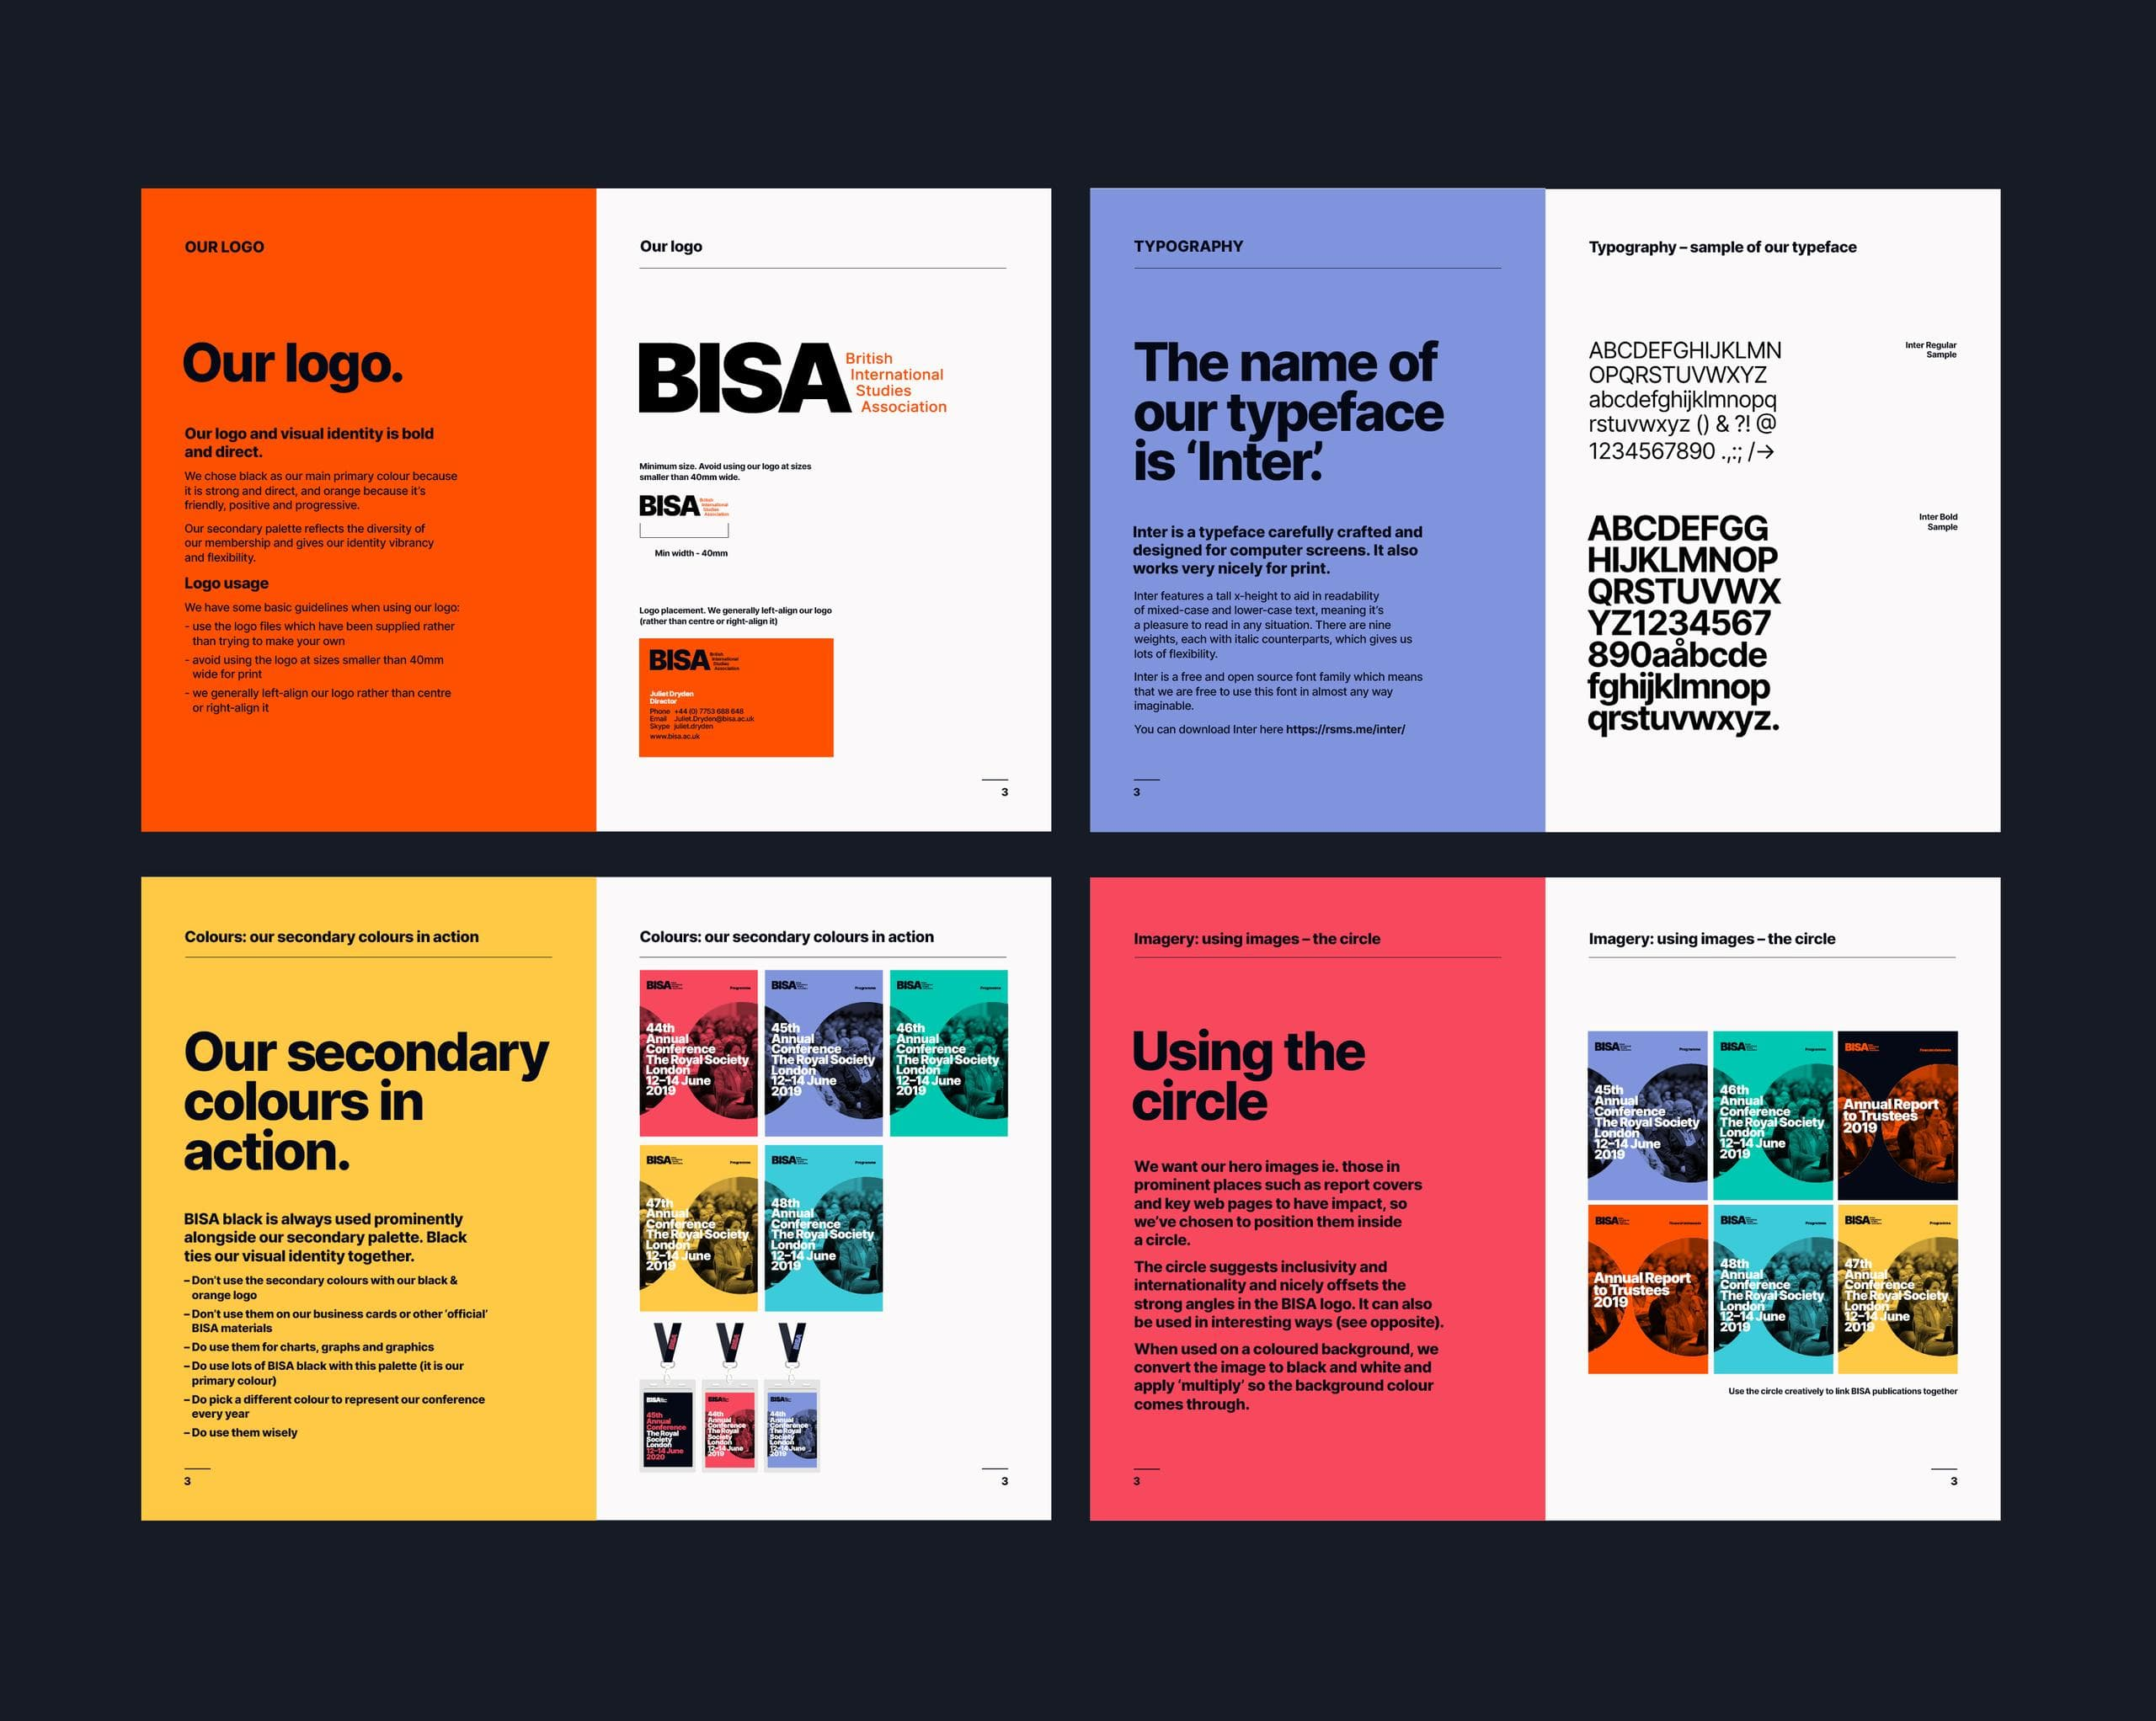 Some pages from the new brand guidelines